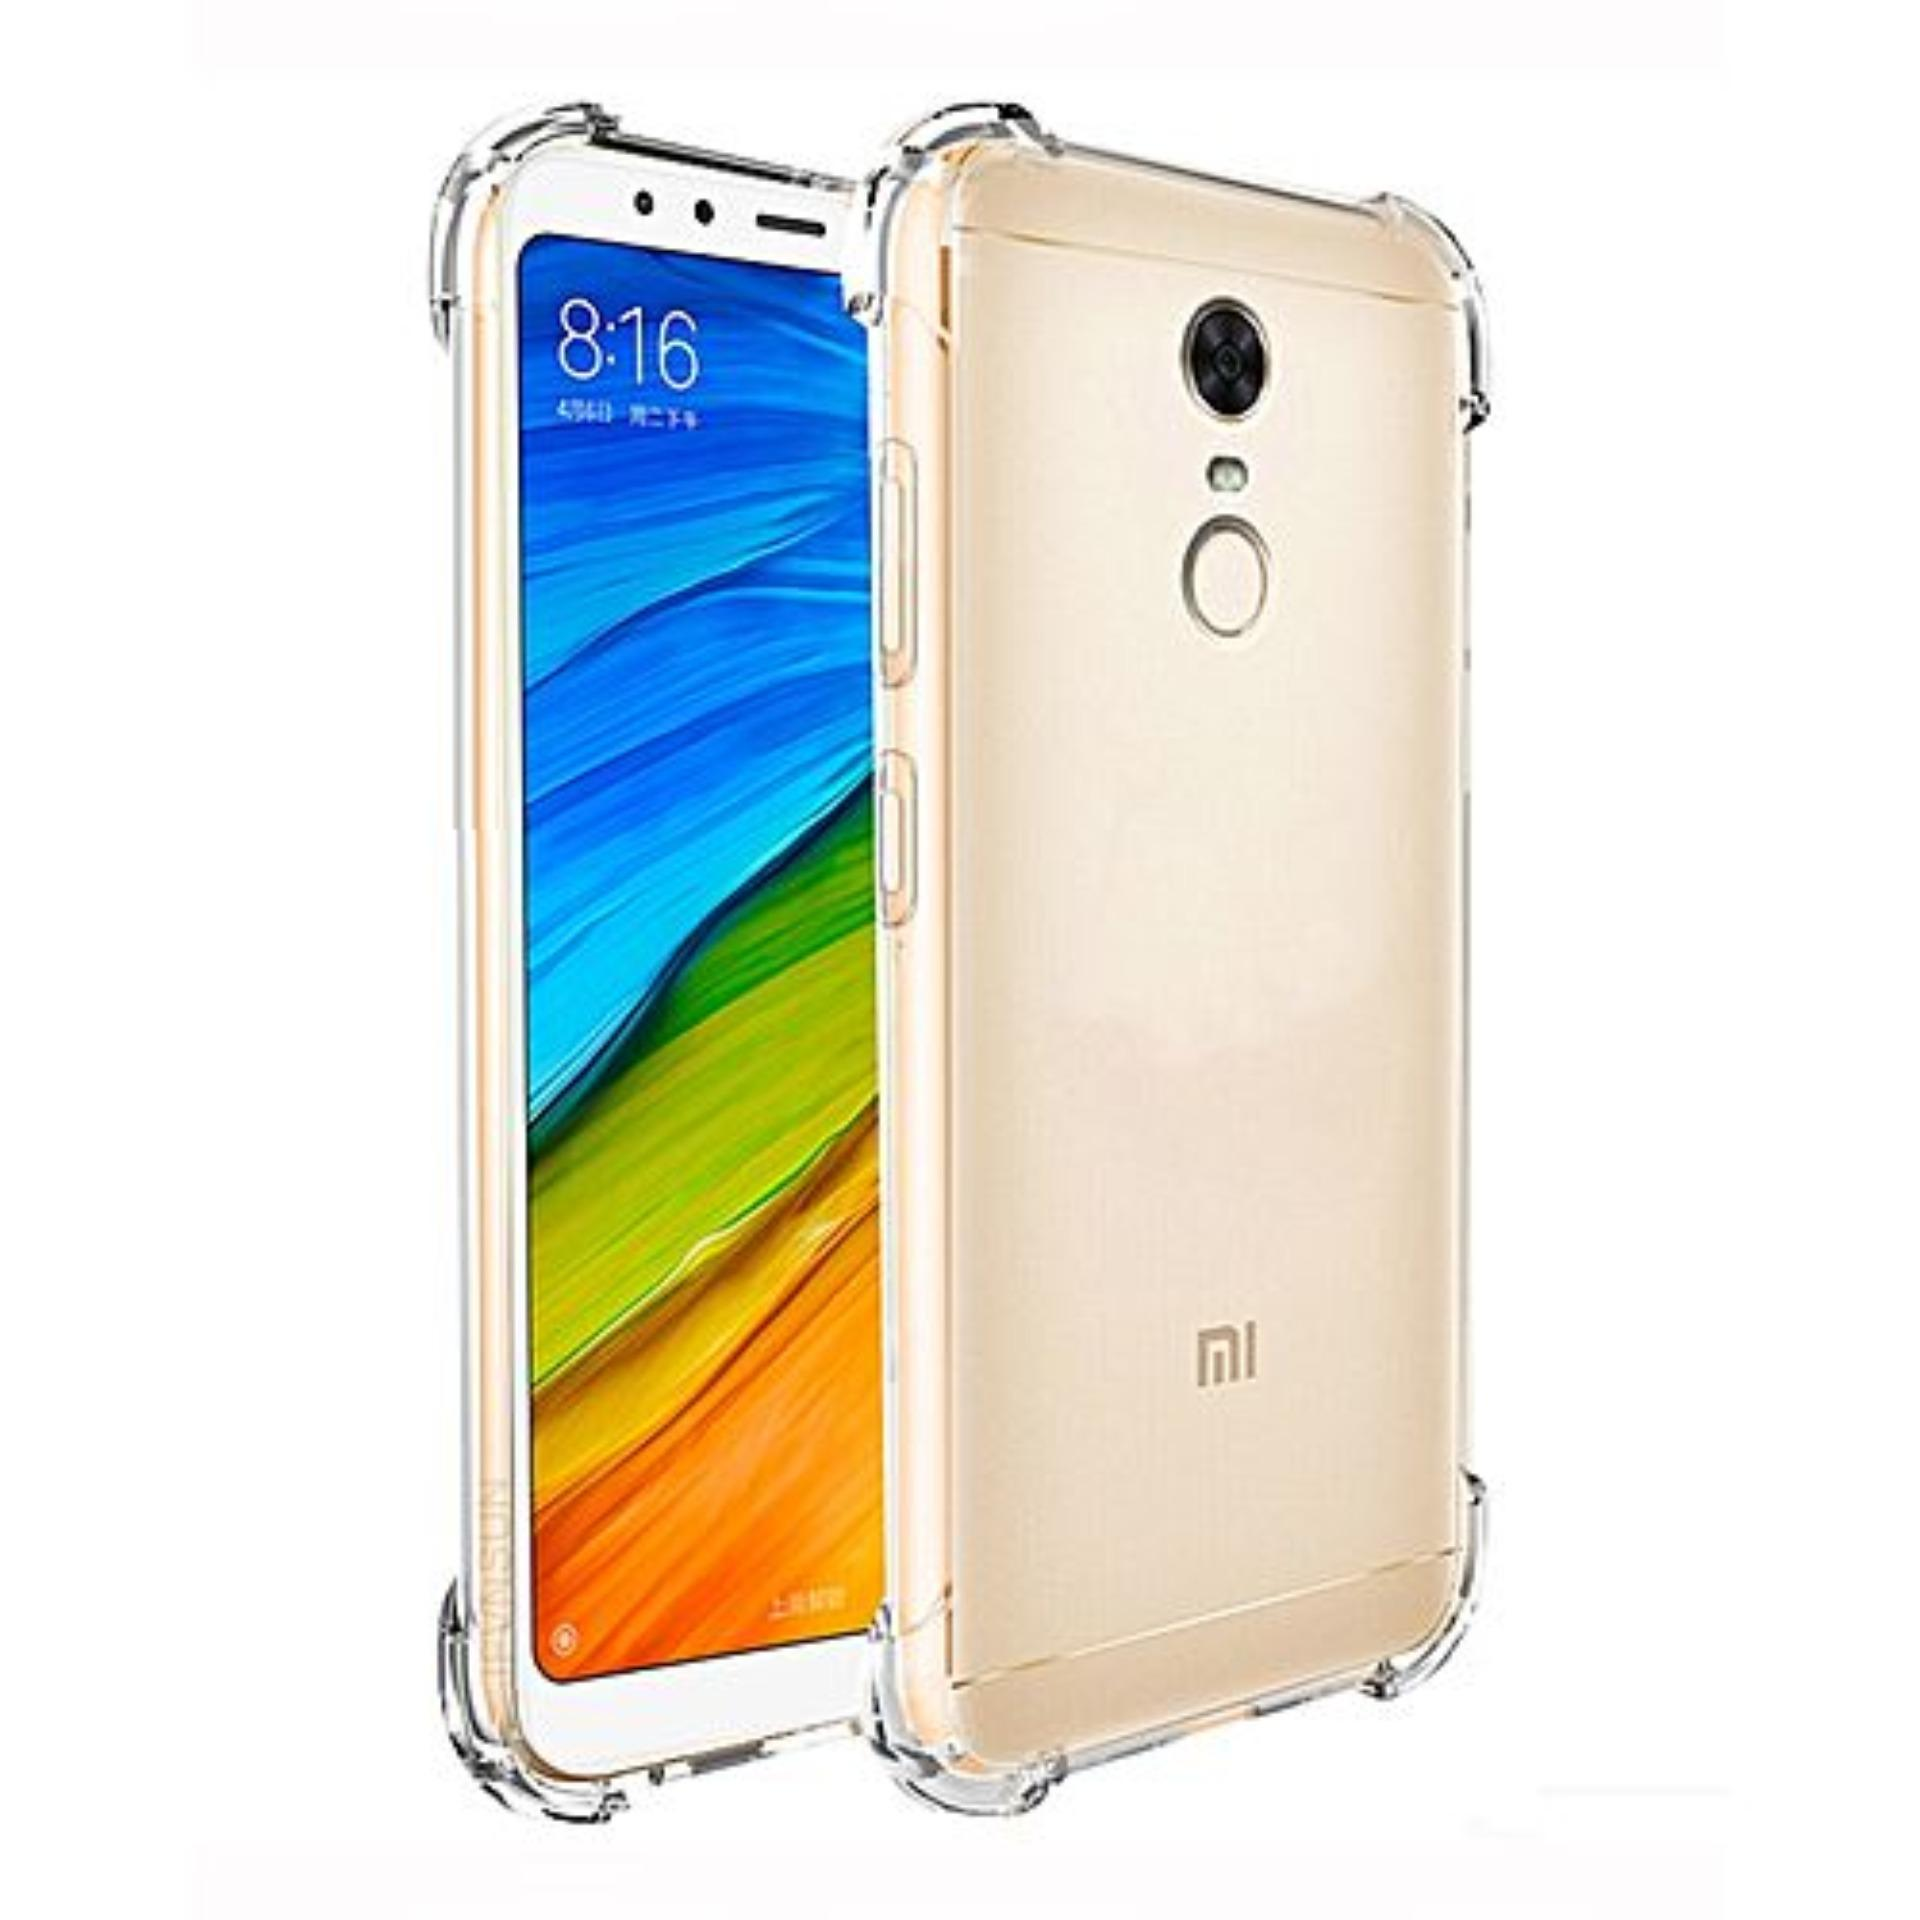 Tempered Glass 9H Screen Protector 0.32mm + Gratis Free Hanger Charger Smartphone .